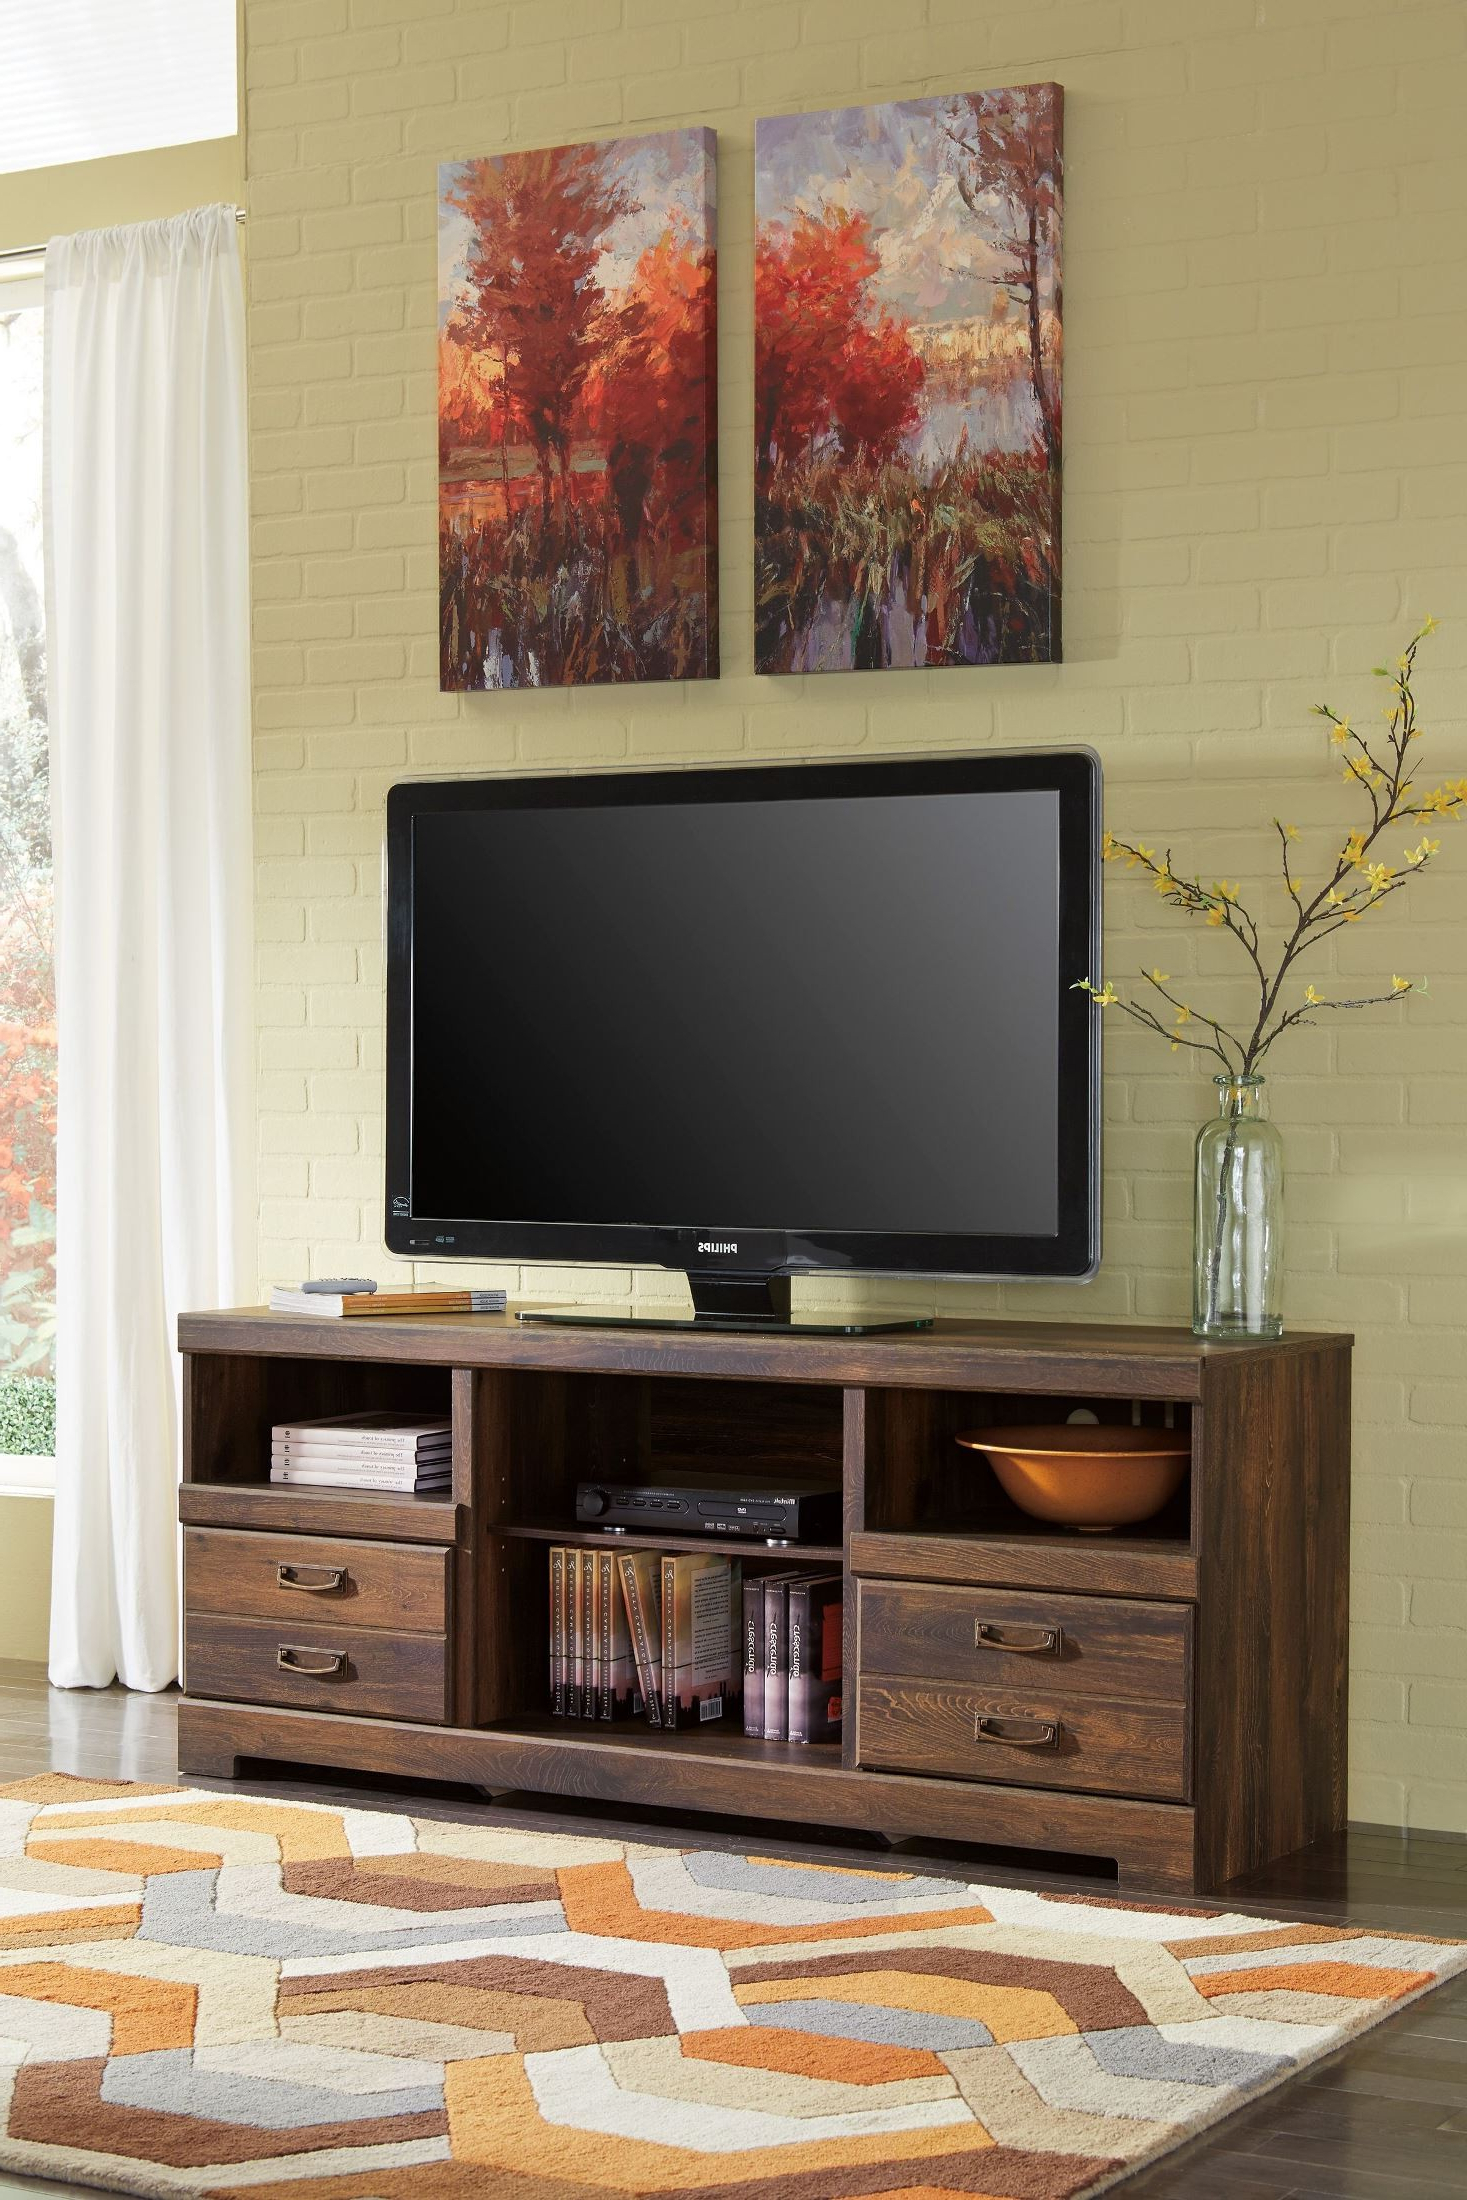 Signature Designashley Quinden Lg Tv Stand With Glass/stone Pertaining To Vista 68 Inch Tv Stands (View 14 of 20)